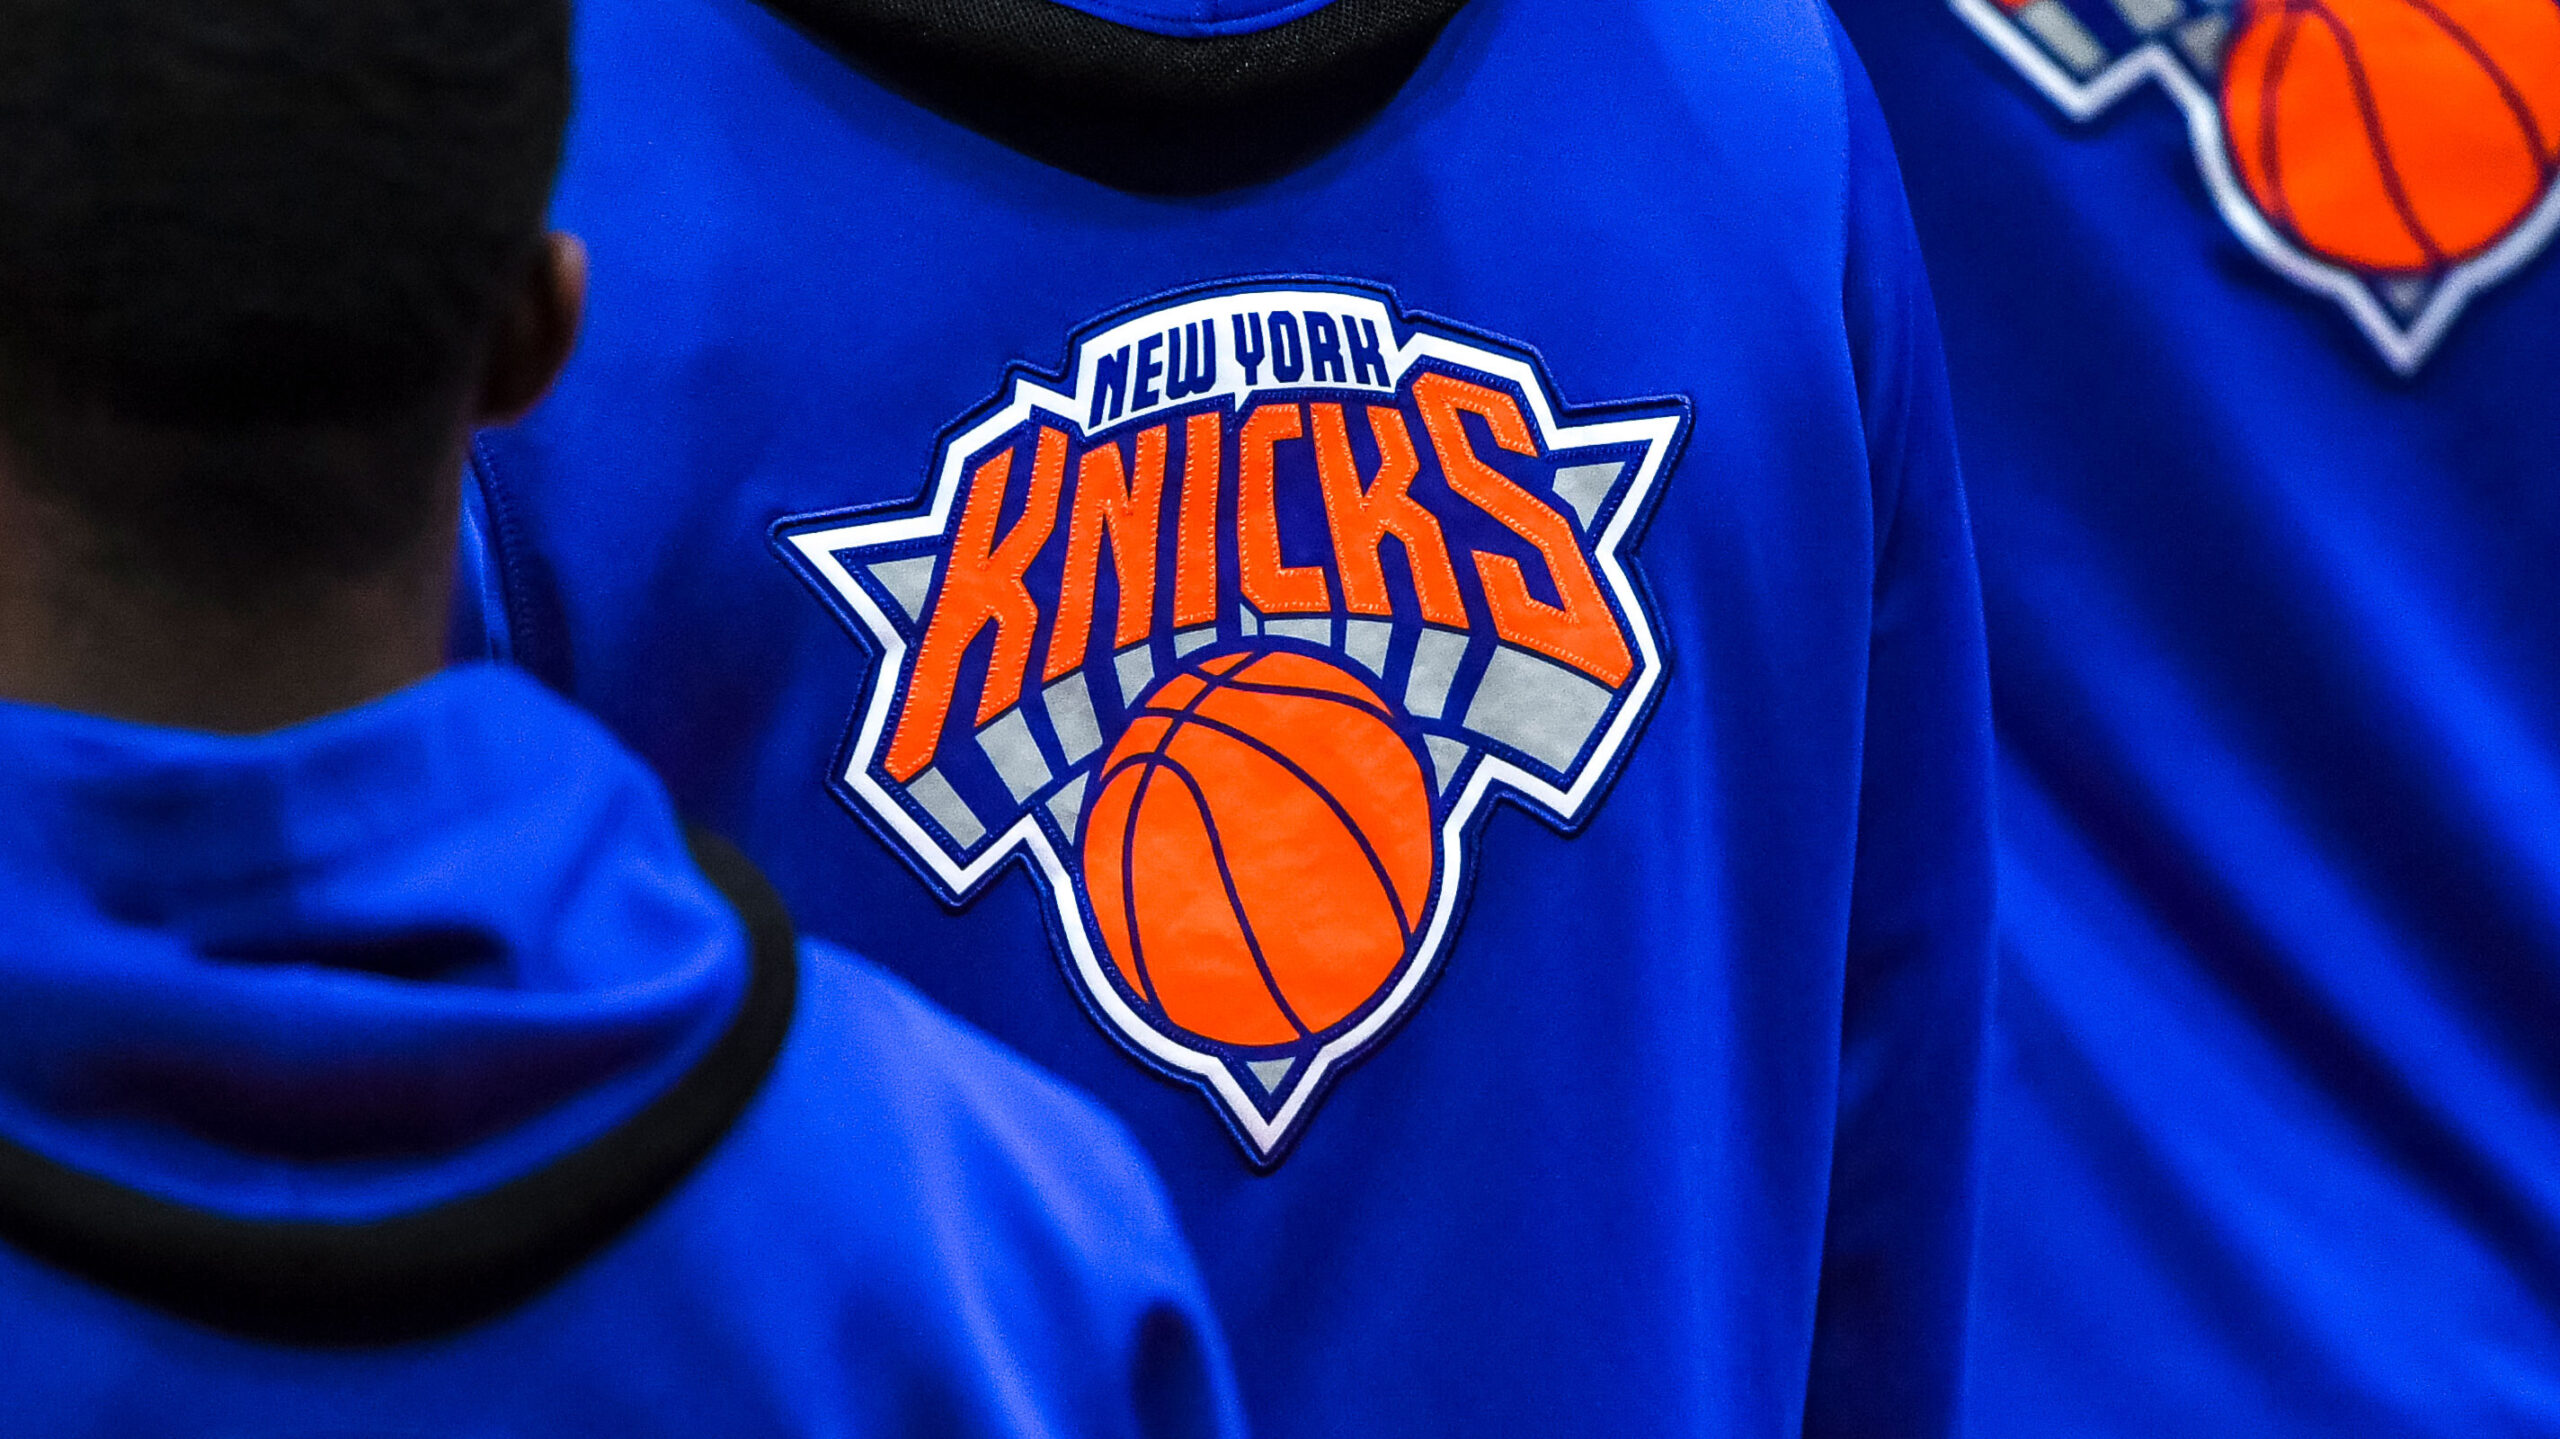 <i>Nic Antaya/Getty Images</i><br/>The New York Knicks adhered to local rules to get fully vaccinated before the season begins October 19.